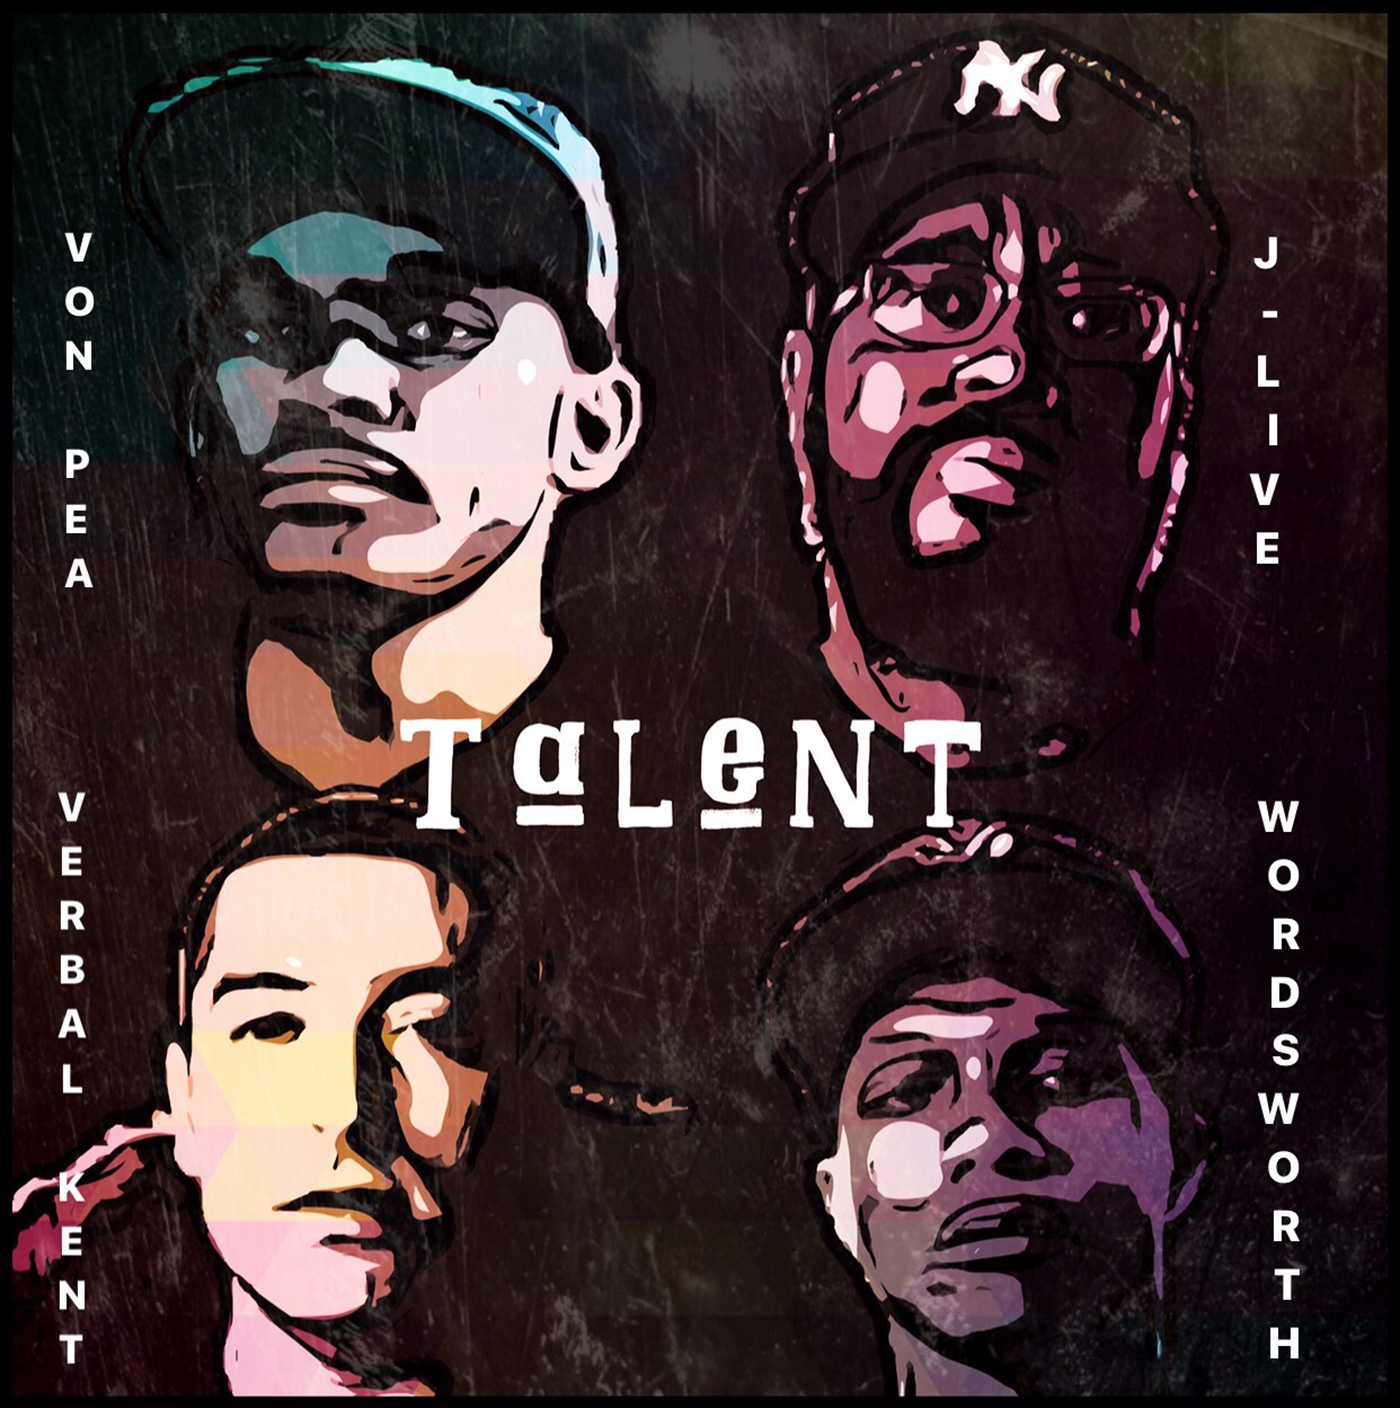 Von Pea & The Other Guys - Talent ft. J-Live, Verbal Kent & Wordsworth [audio]